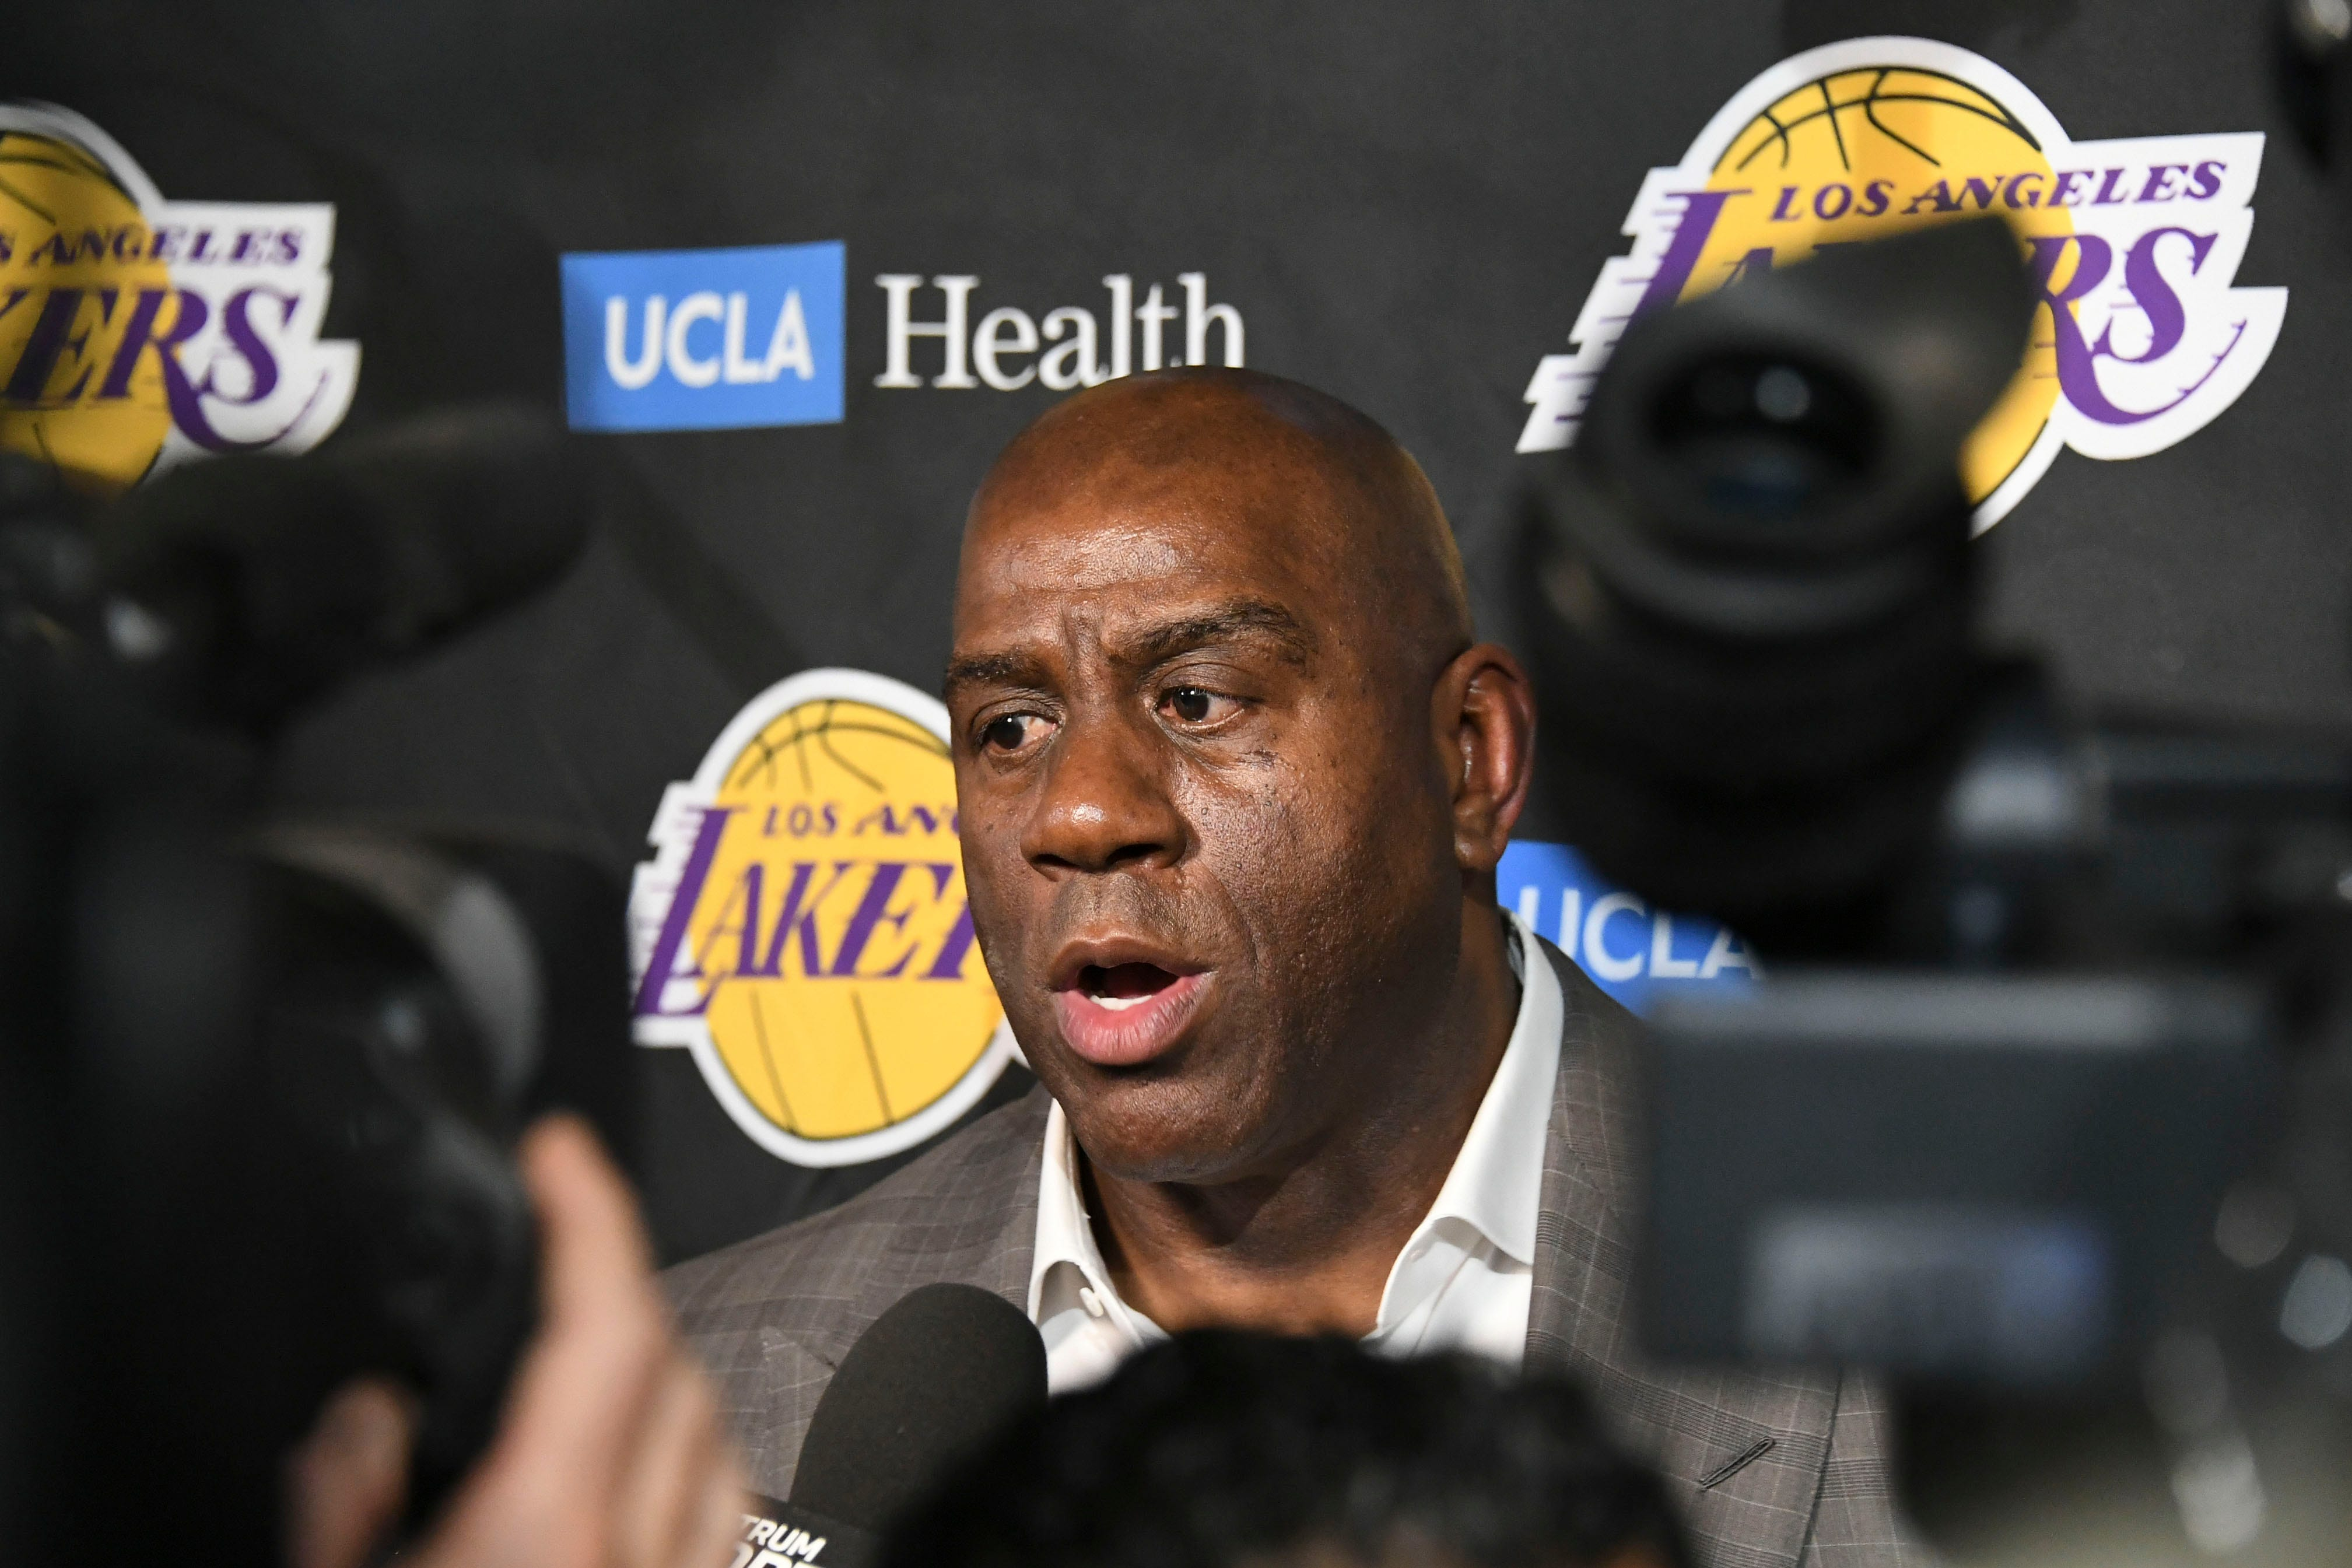 Magic Johnson to provide $100 million in loans to minority-owned businesses